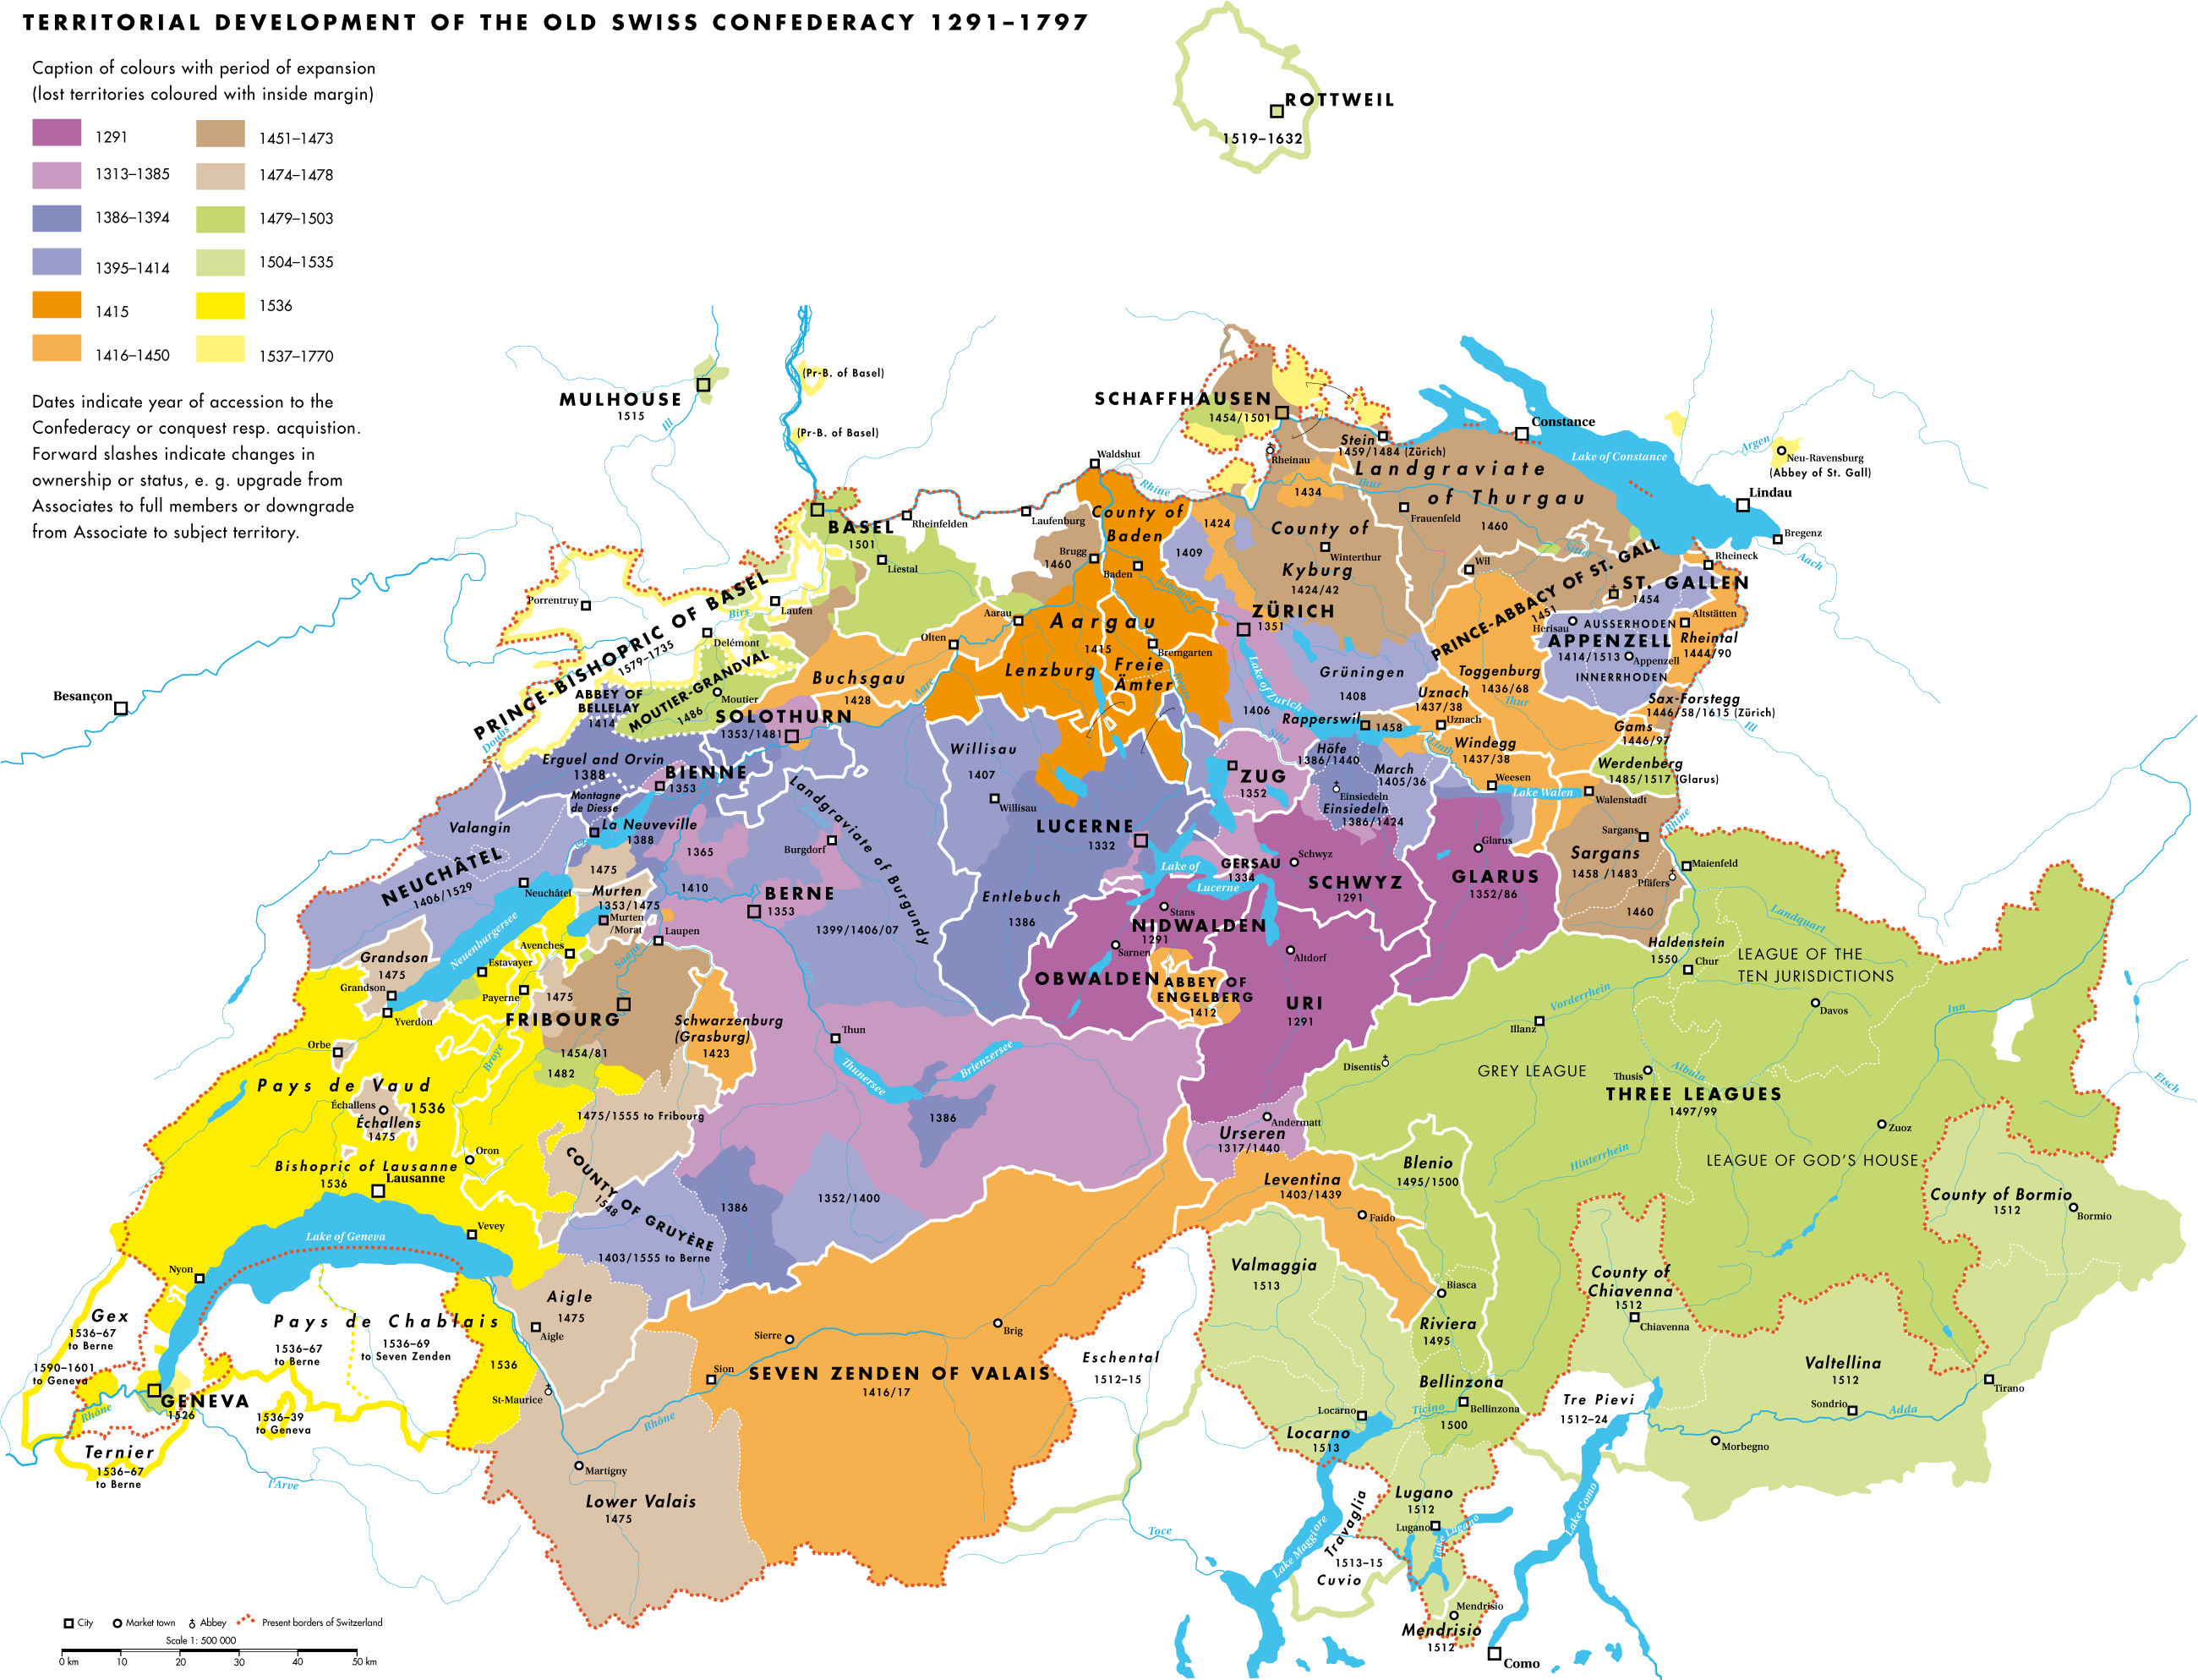 Map of Old Swiss Confederacy, 1291-1797